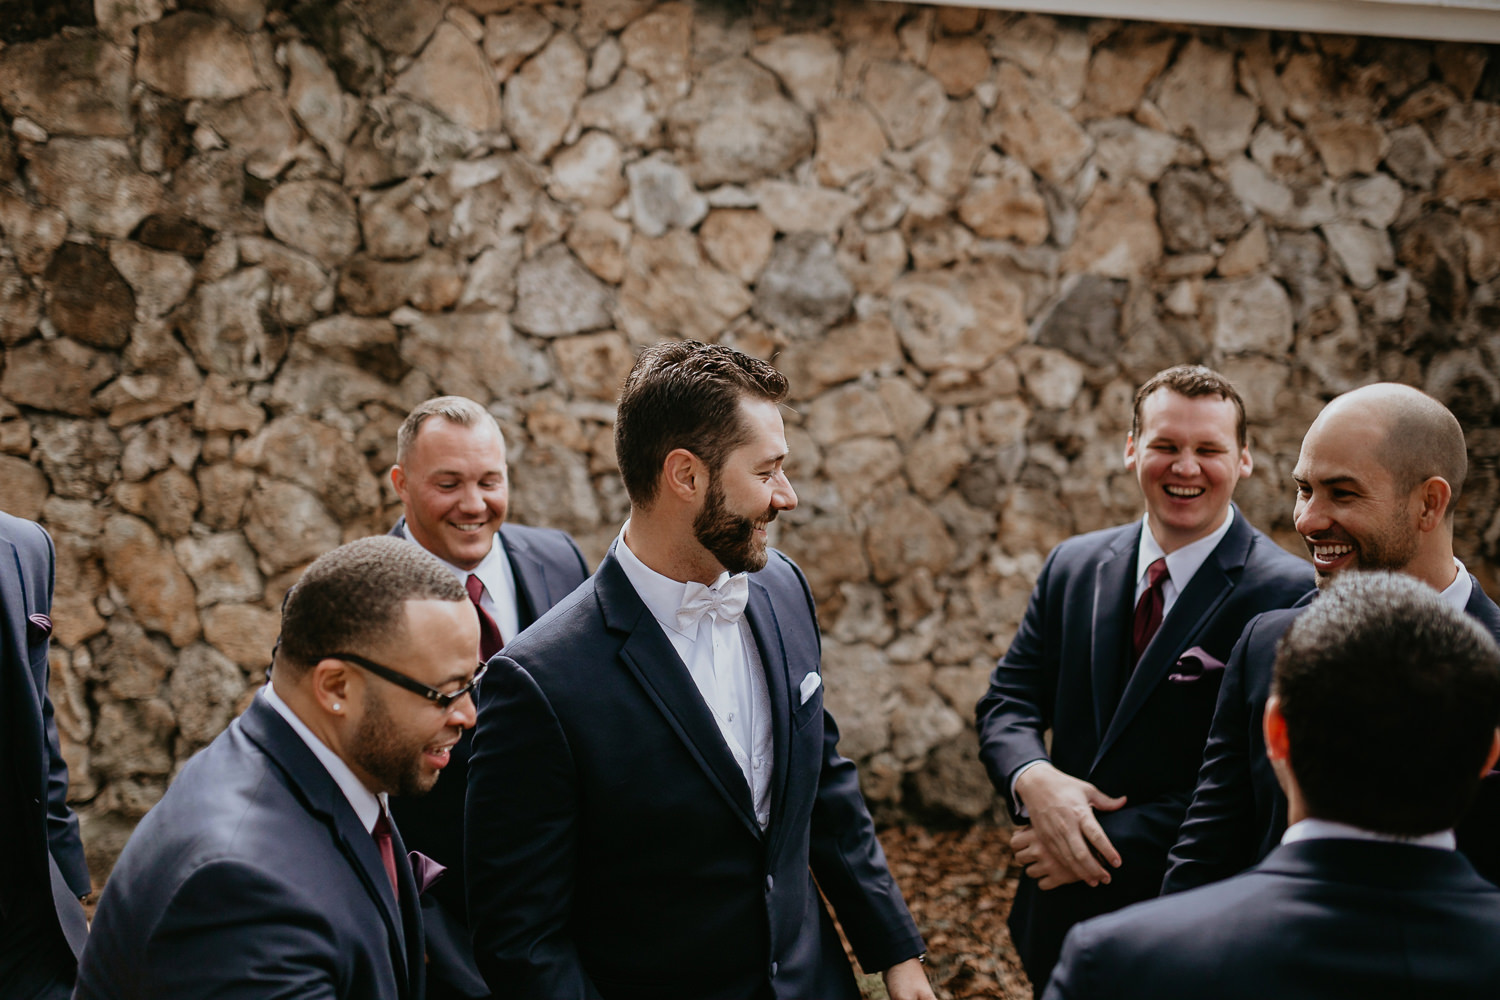 groomsmen huddled in front of stone wall with groom in the middle, all laughing